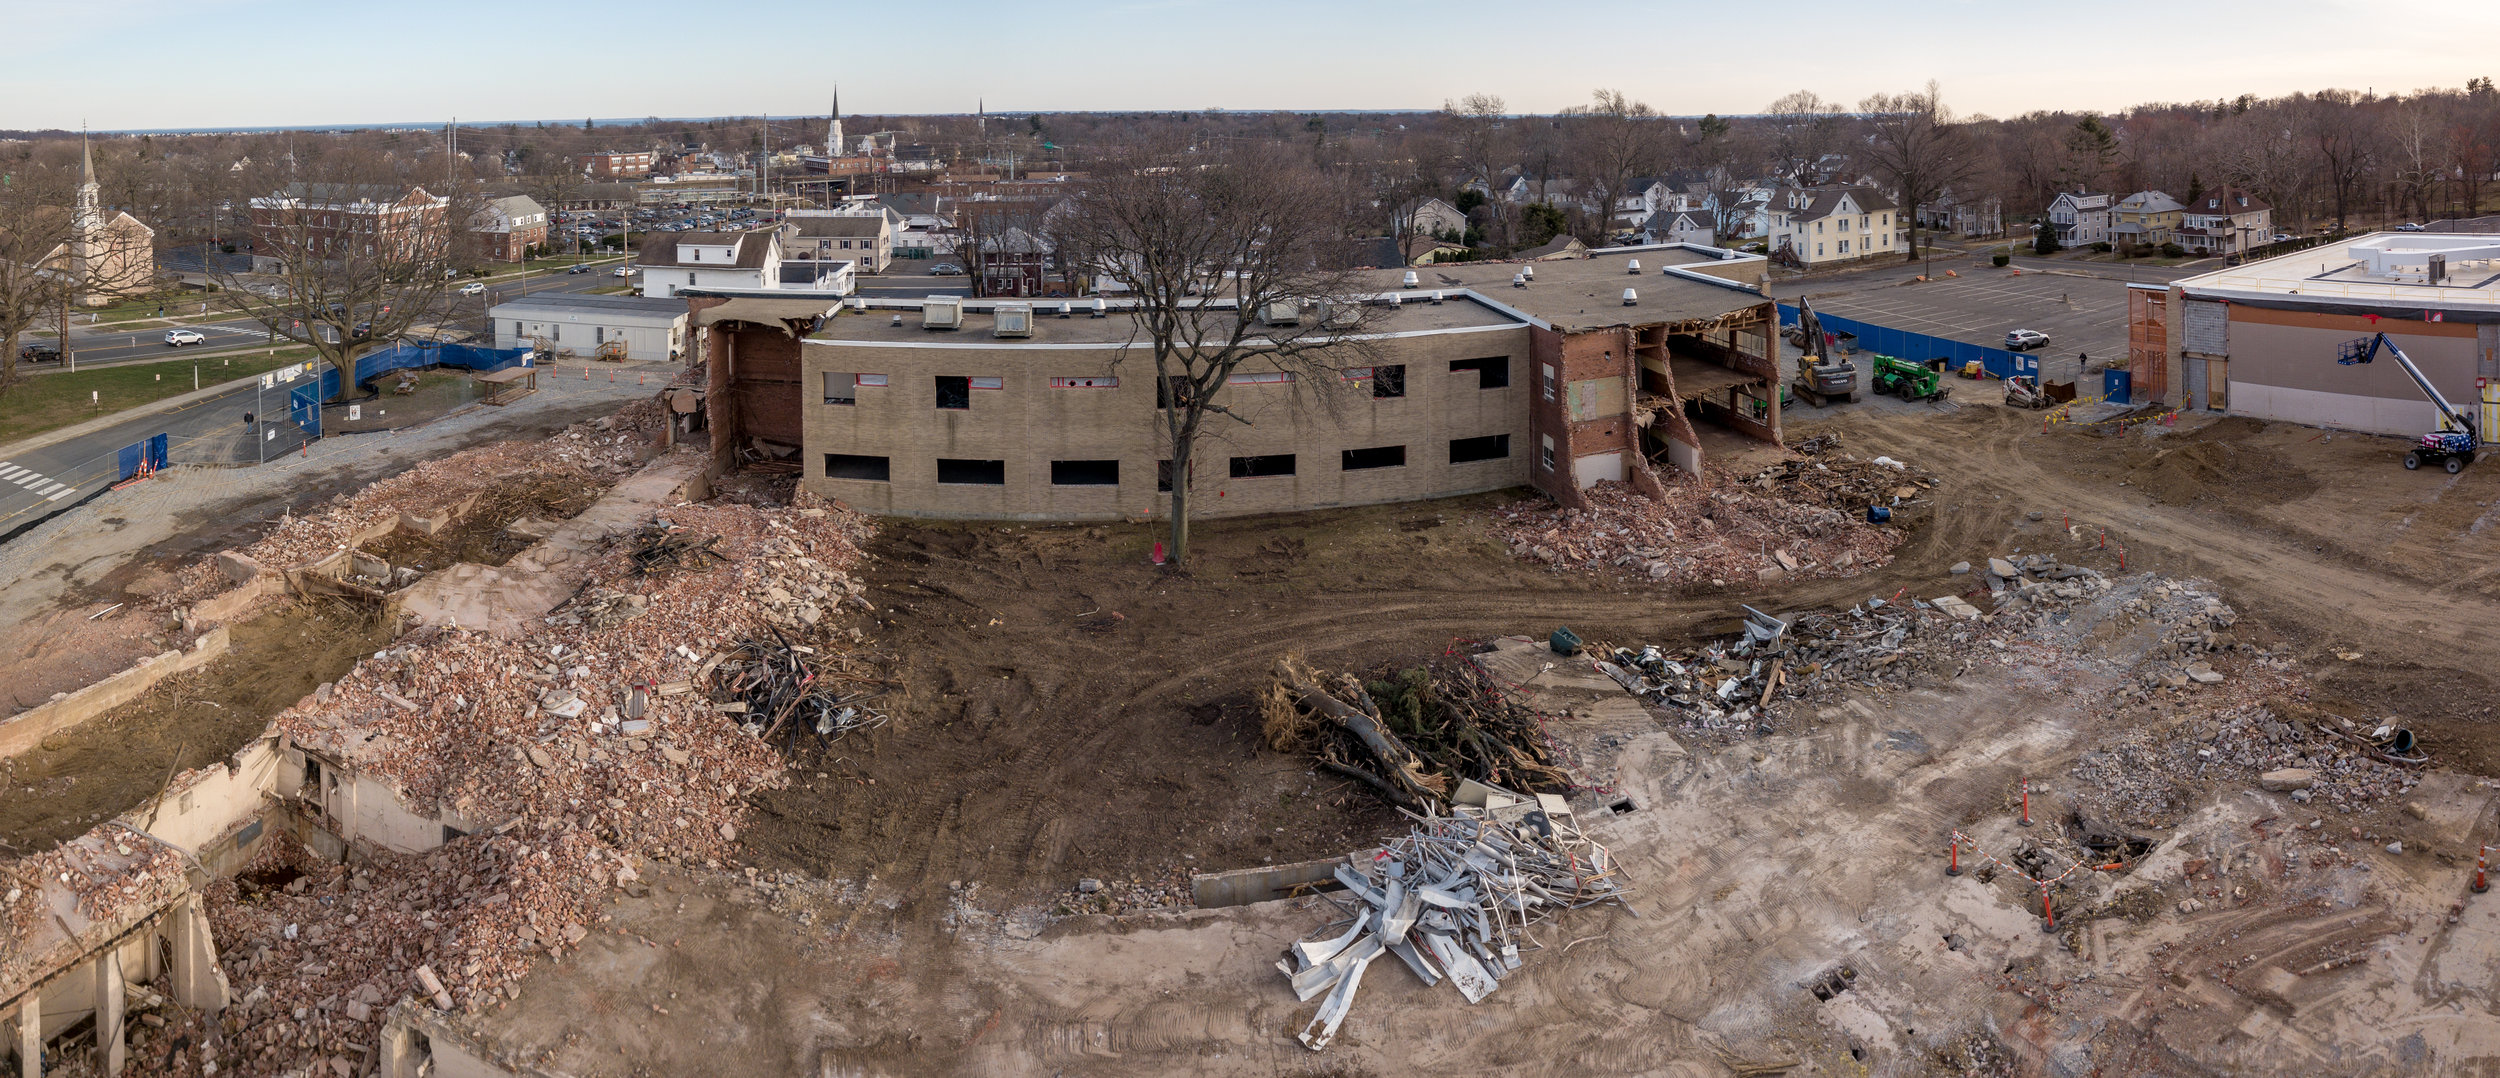 Stratford High School Construction - 2019-04-04 _ 0003.jpg